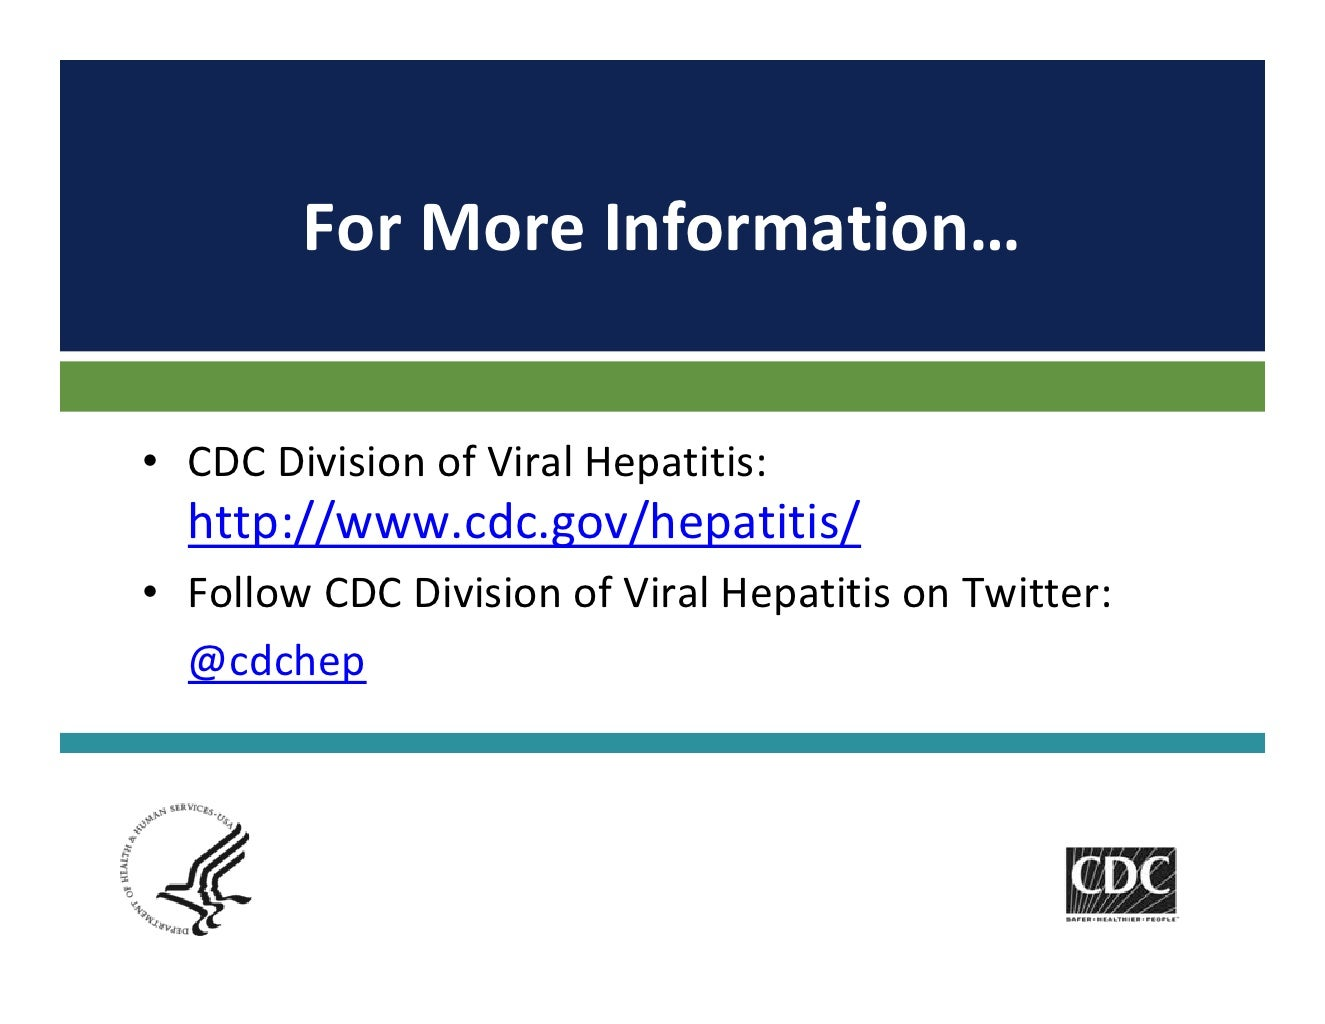 Division Of Viral Hepatitis  >> For More Information Cdc Division Of Viral Hepatitis Http Www